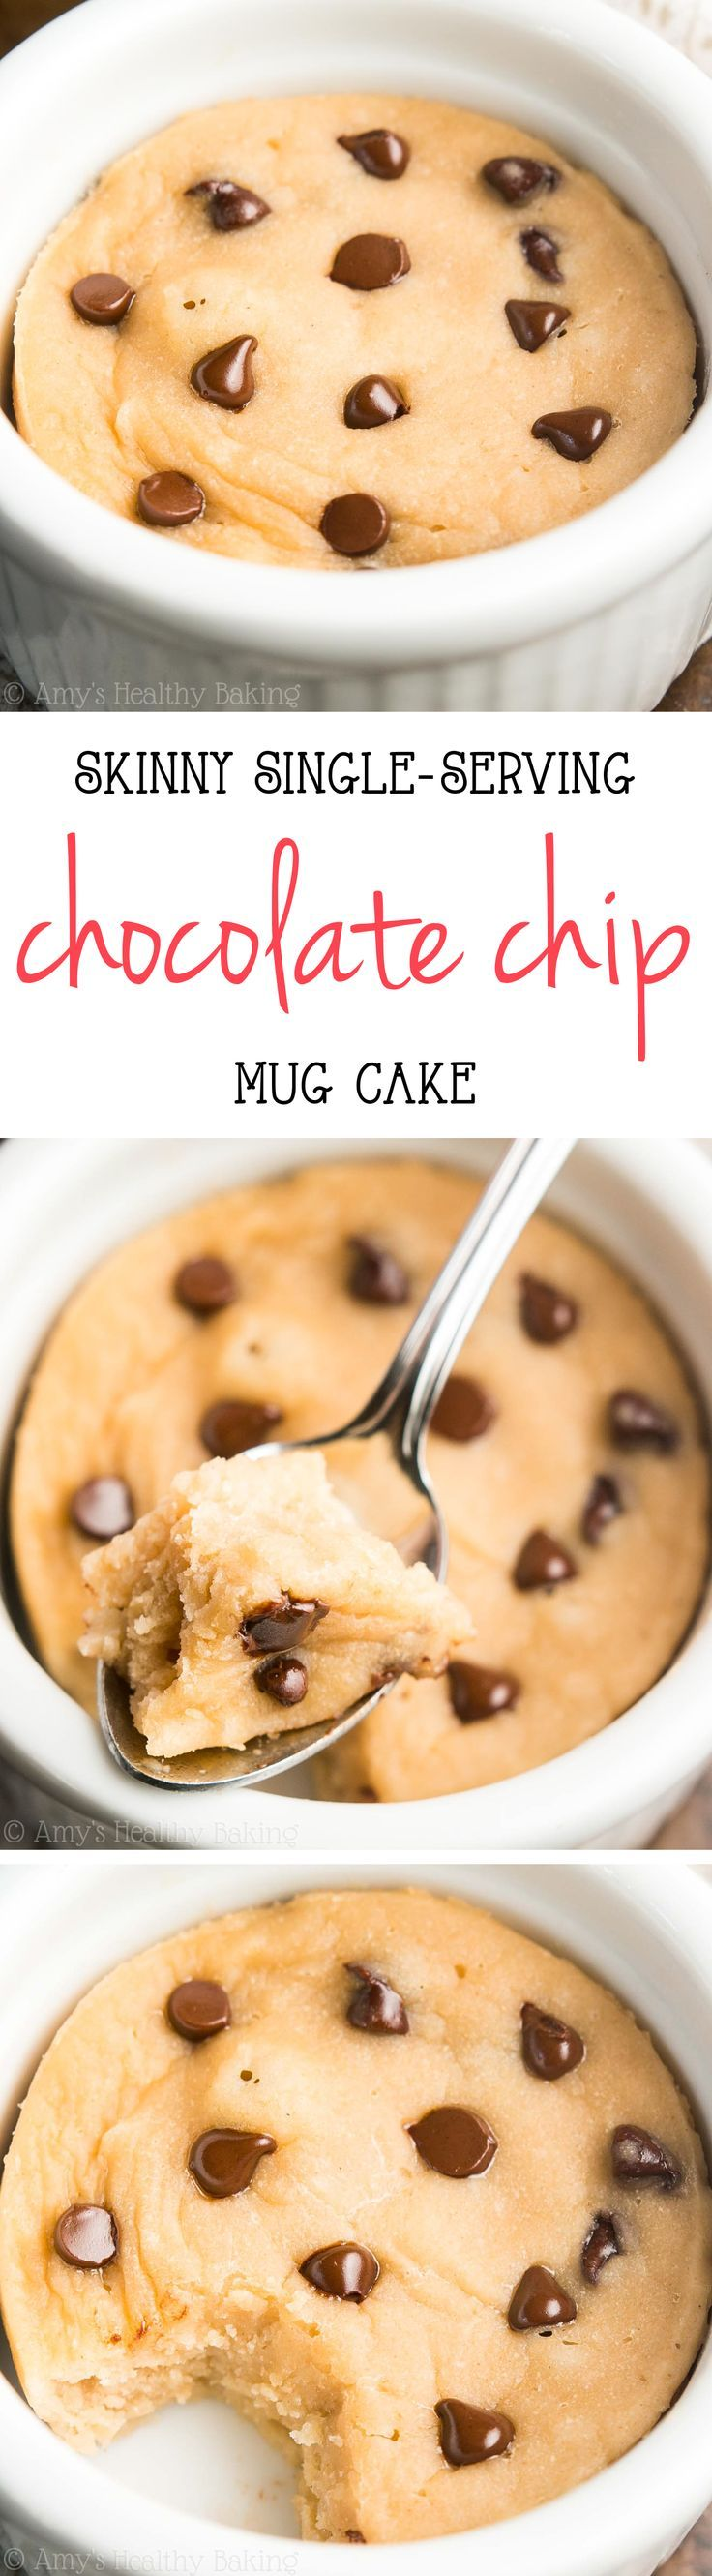 Skinny Single-Serving Chocolate Chip Mug Cake -- an easy recipe that's practically healthy enough for breakfast! Just 127 calories with 5g+ of protein!